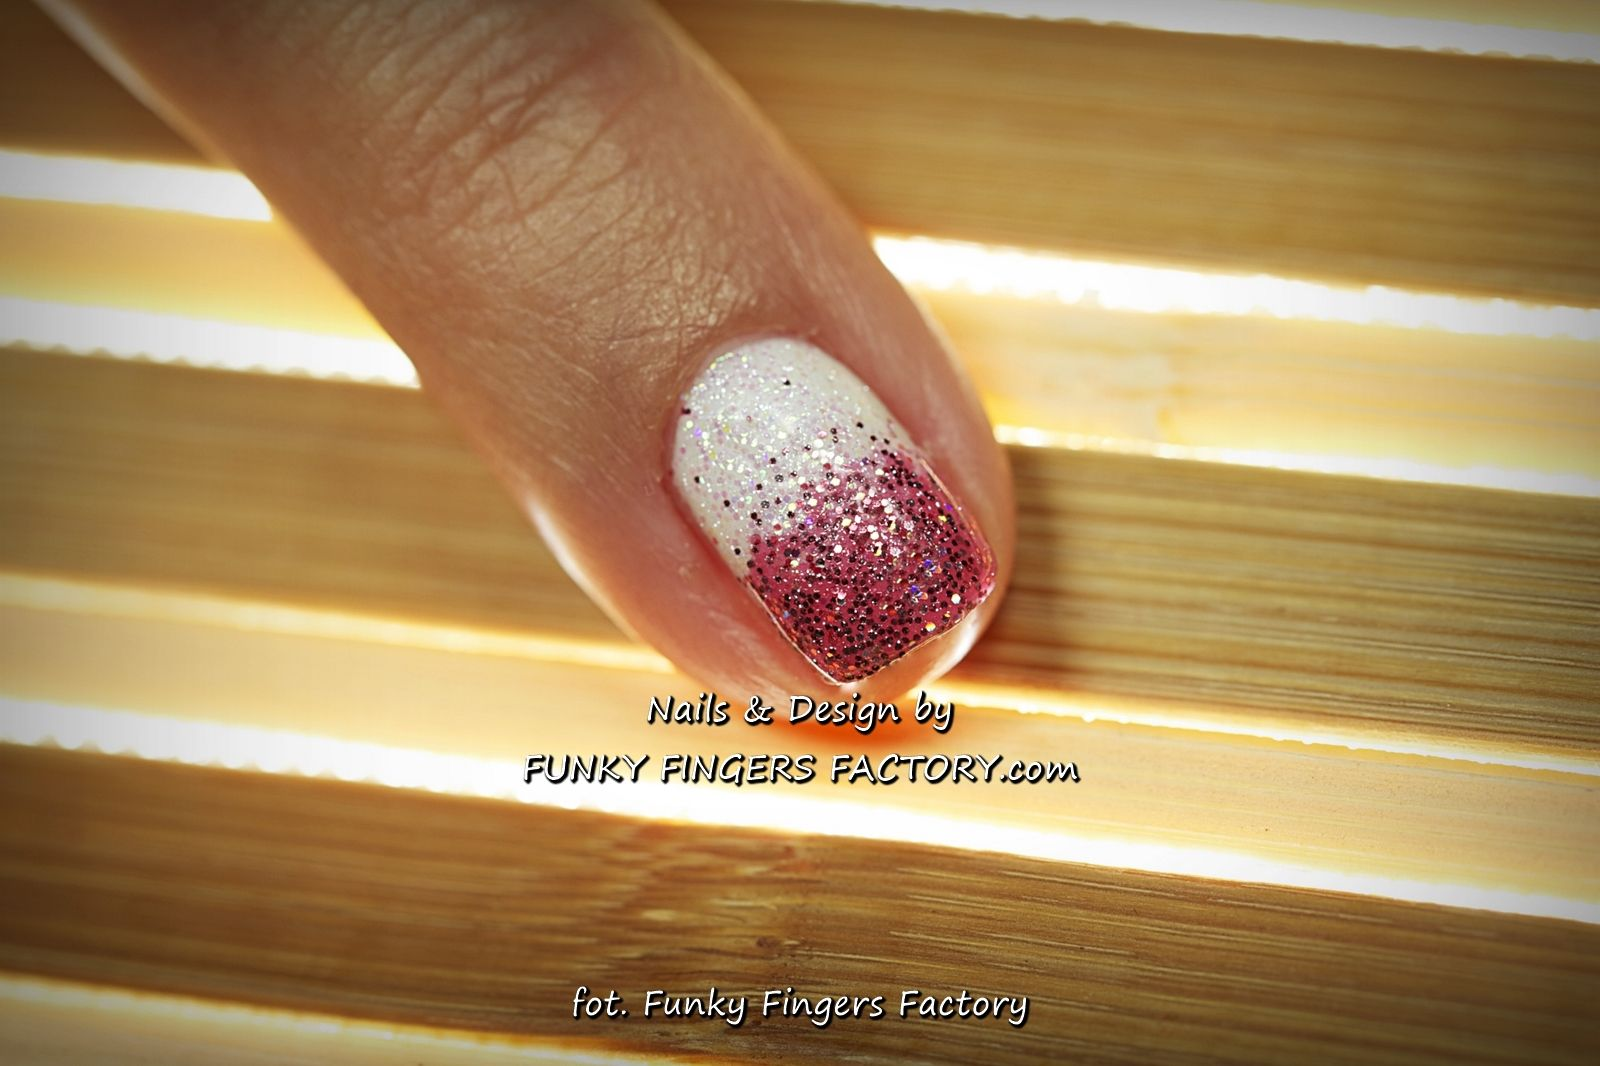 Shellac White and Pink Glitter Ombre nails by www.funkyfingersfactory.com